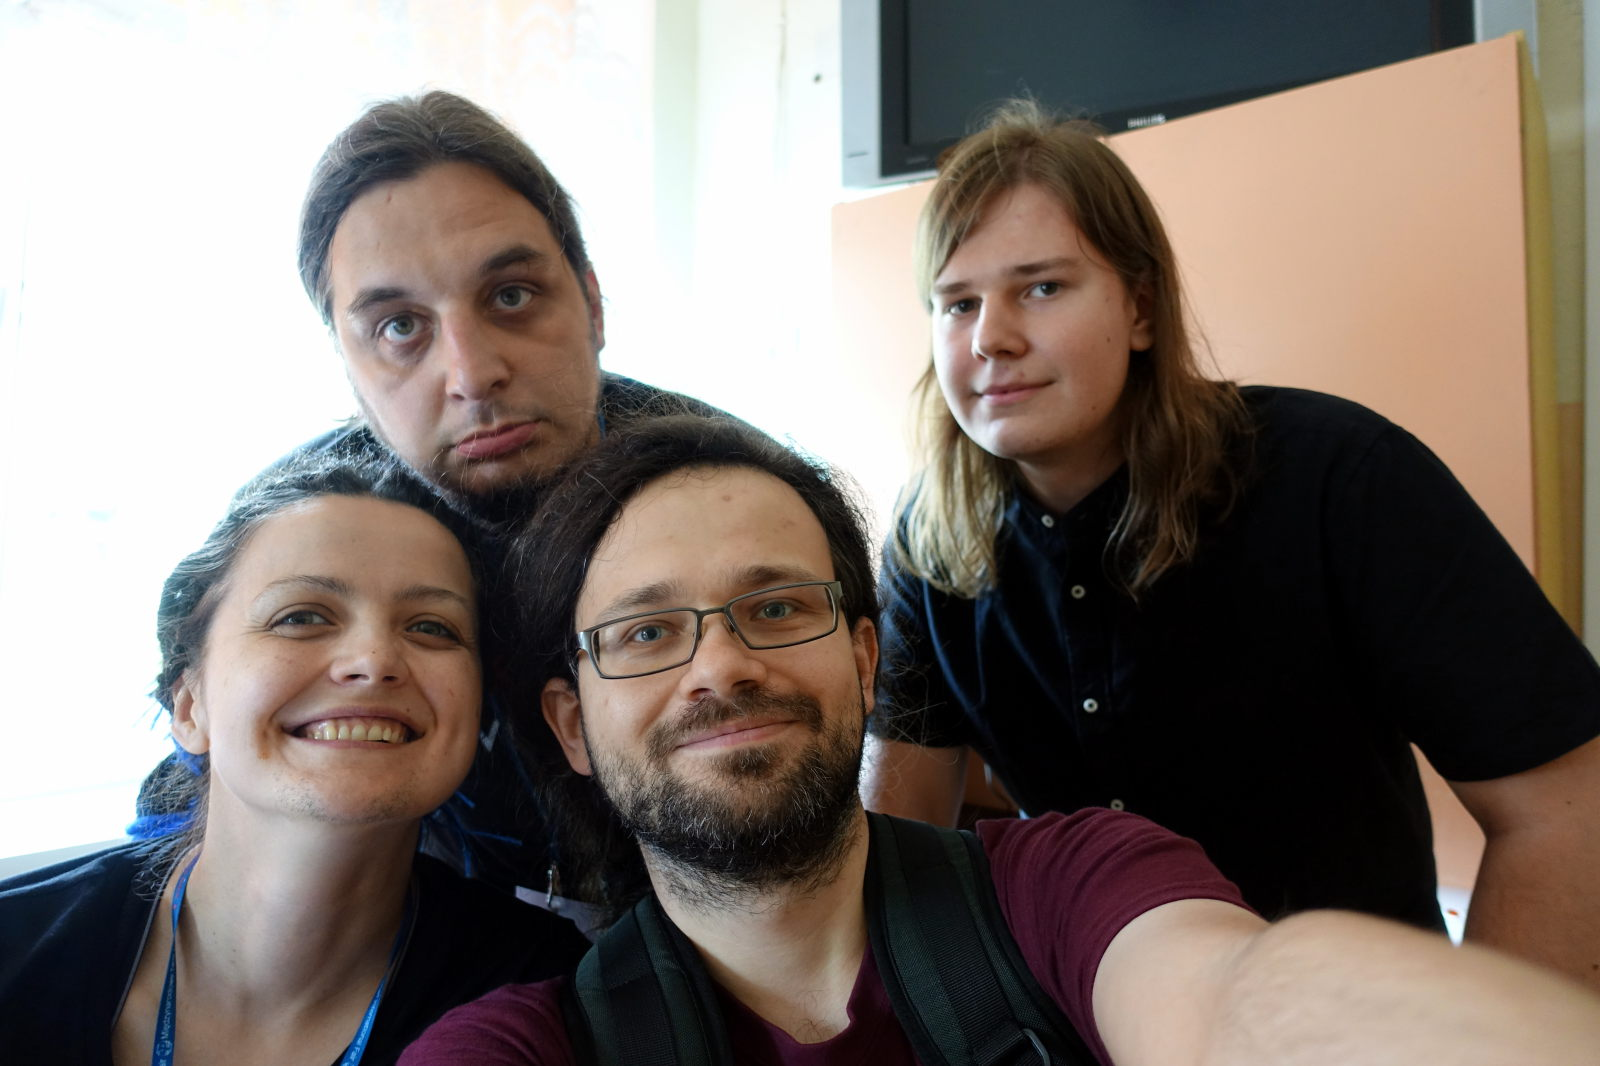 Four people posing for a selfie. One of them pretends to be sad.